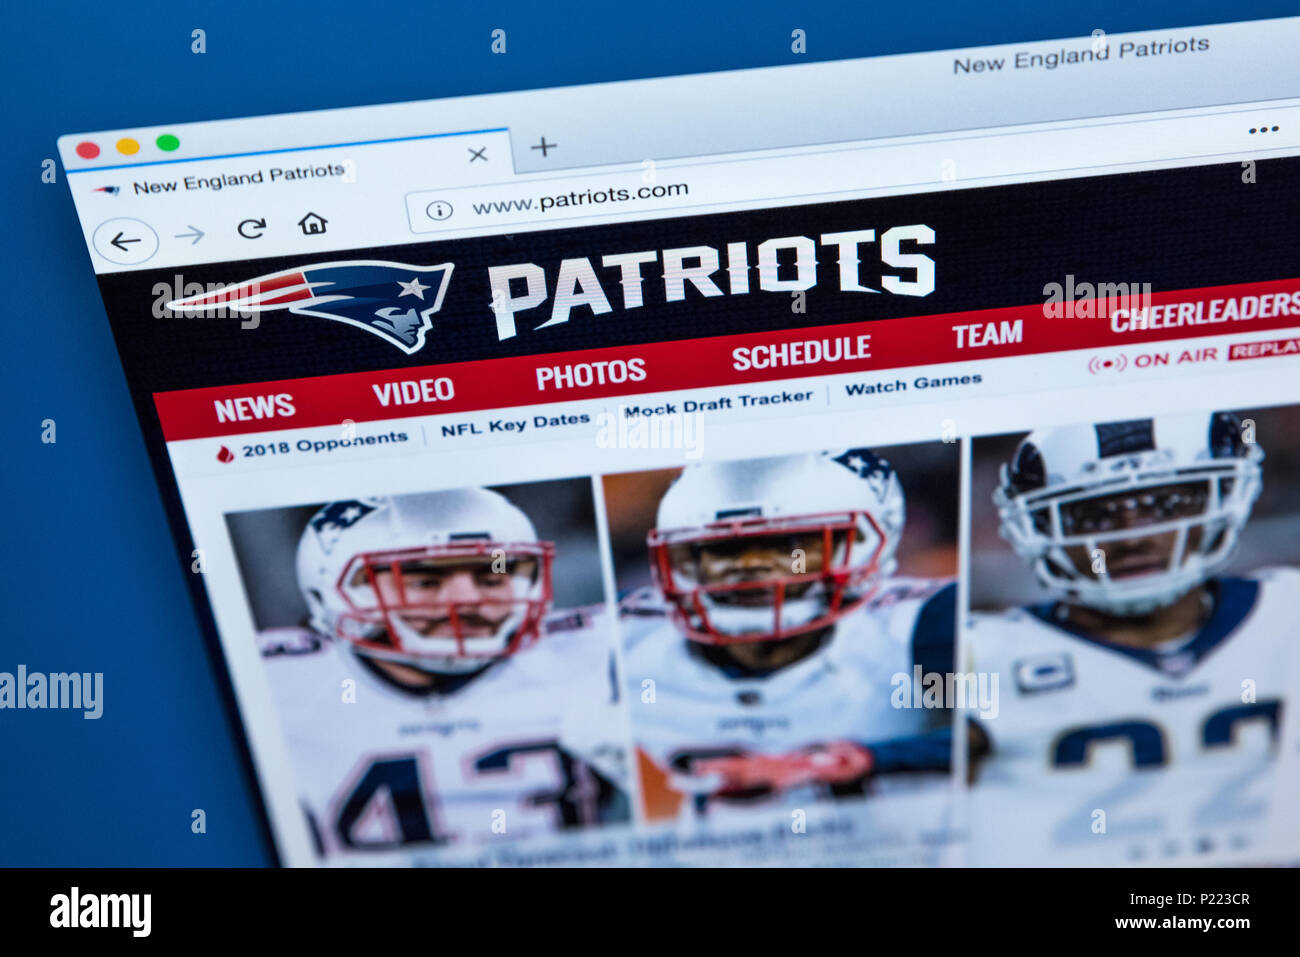 LONDON, UK - FEBRUARY 24TH 2018: The homepage of the official website for the New England Patriots - the American football team, on 24th February 2018 - Stock Image